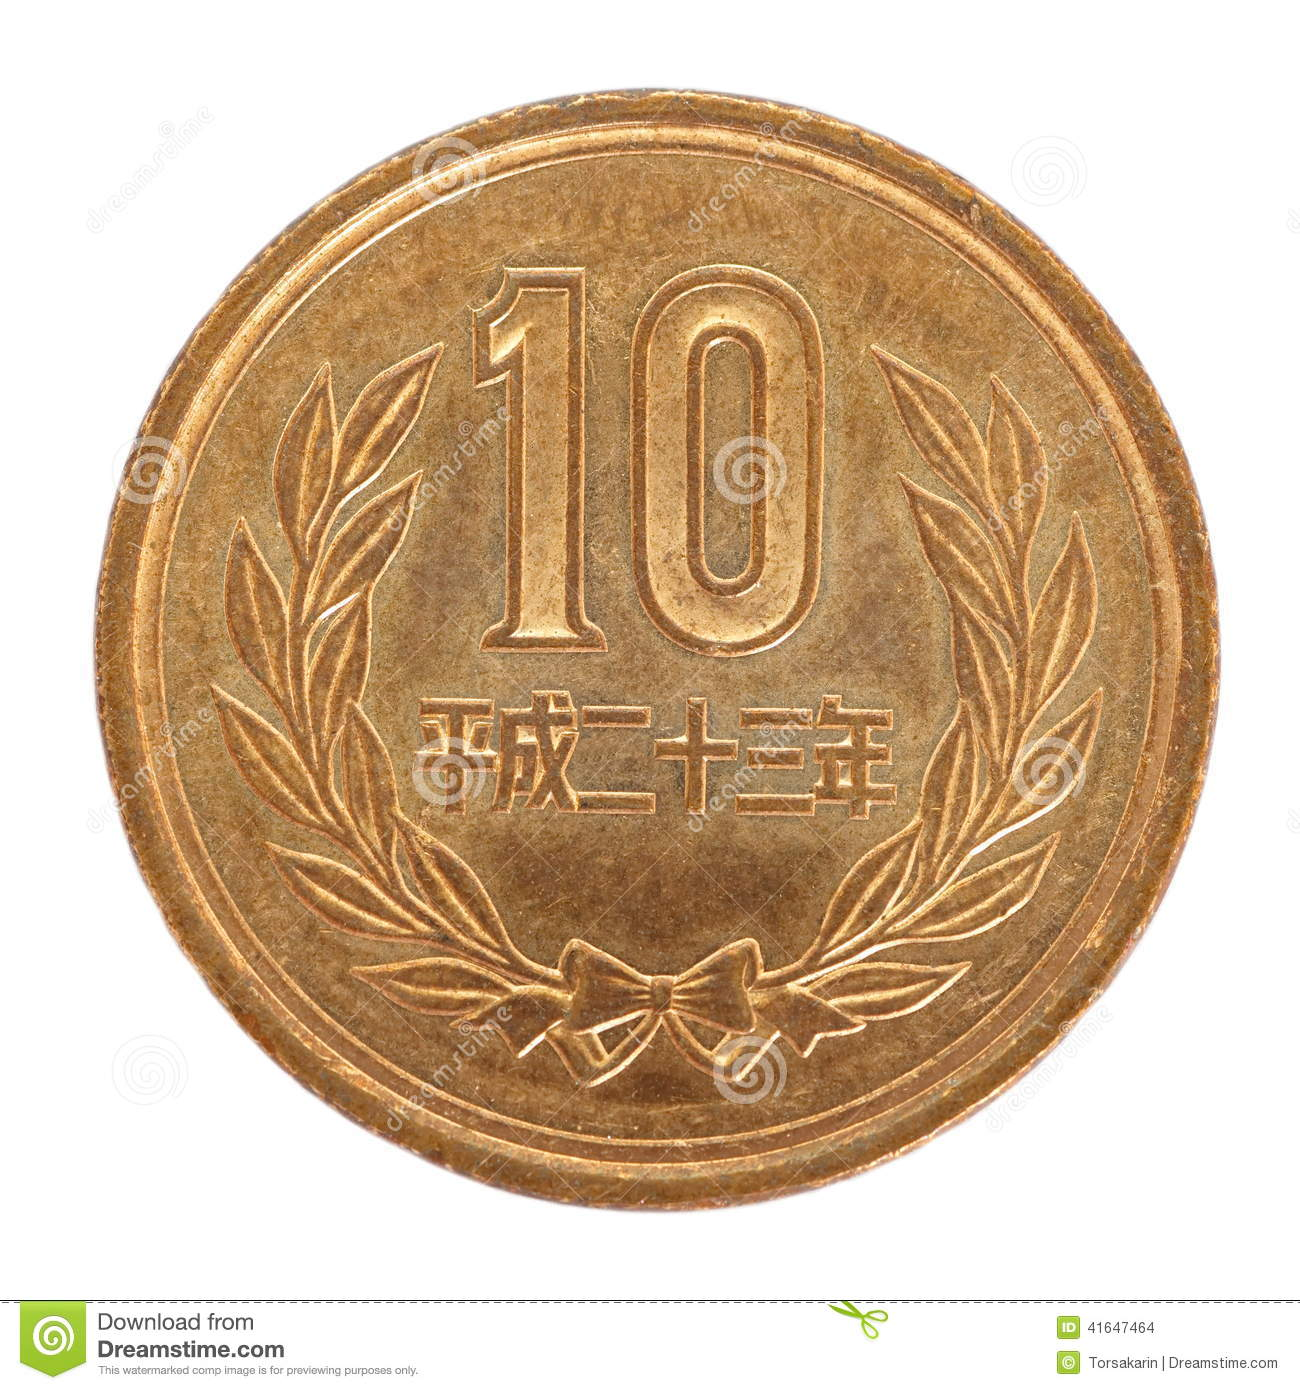 worksheet Yen Coins 10 japanese yen coin stock photo image 41647464 coin